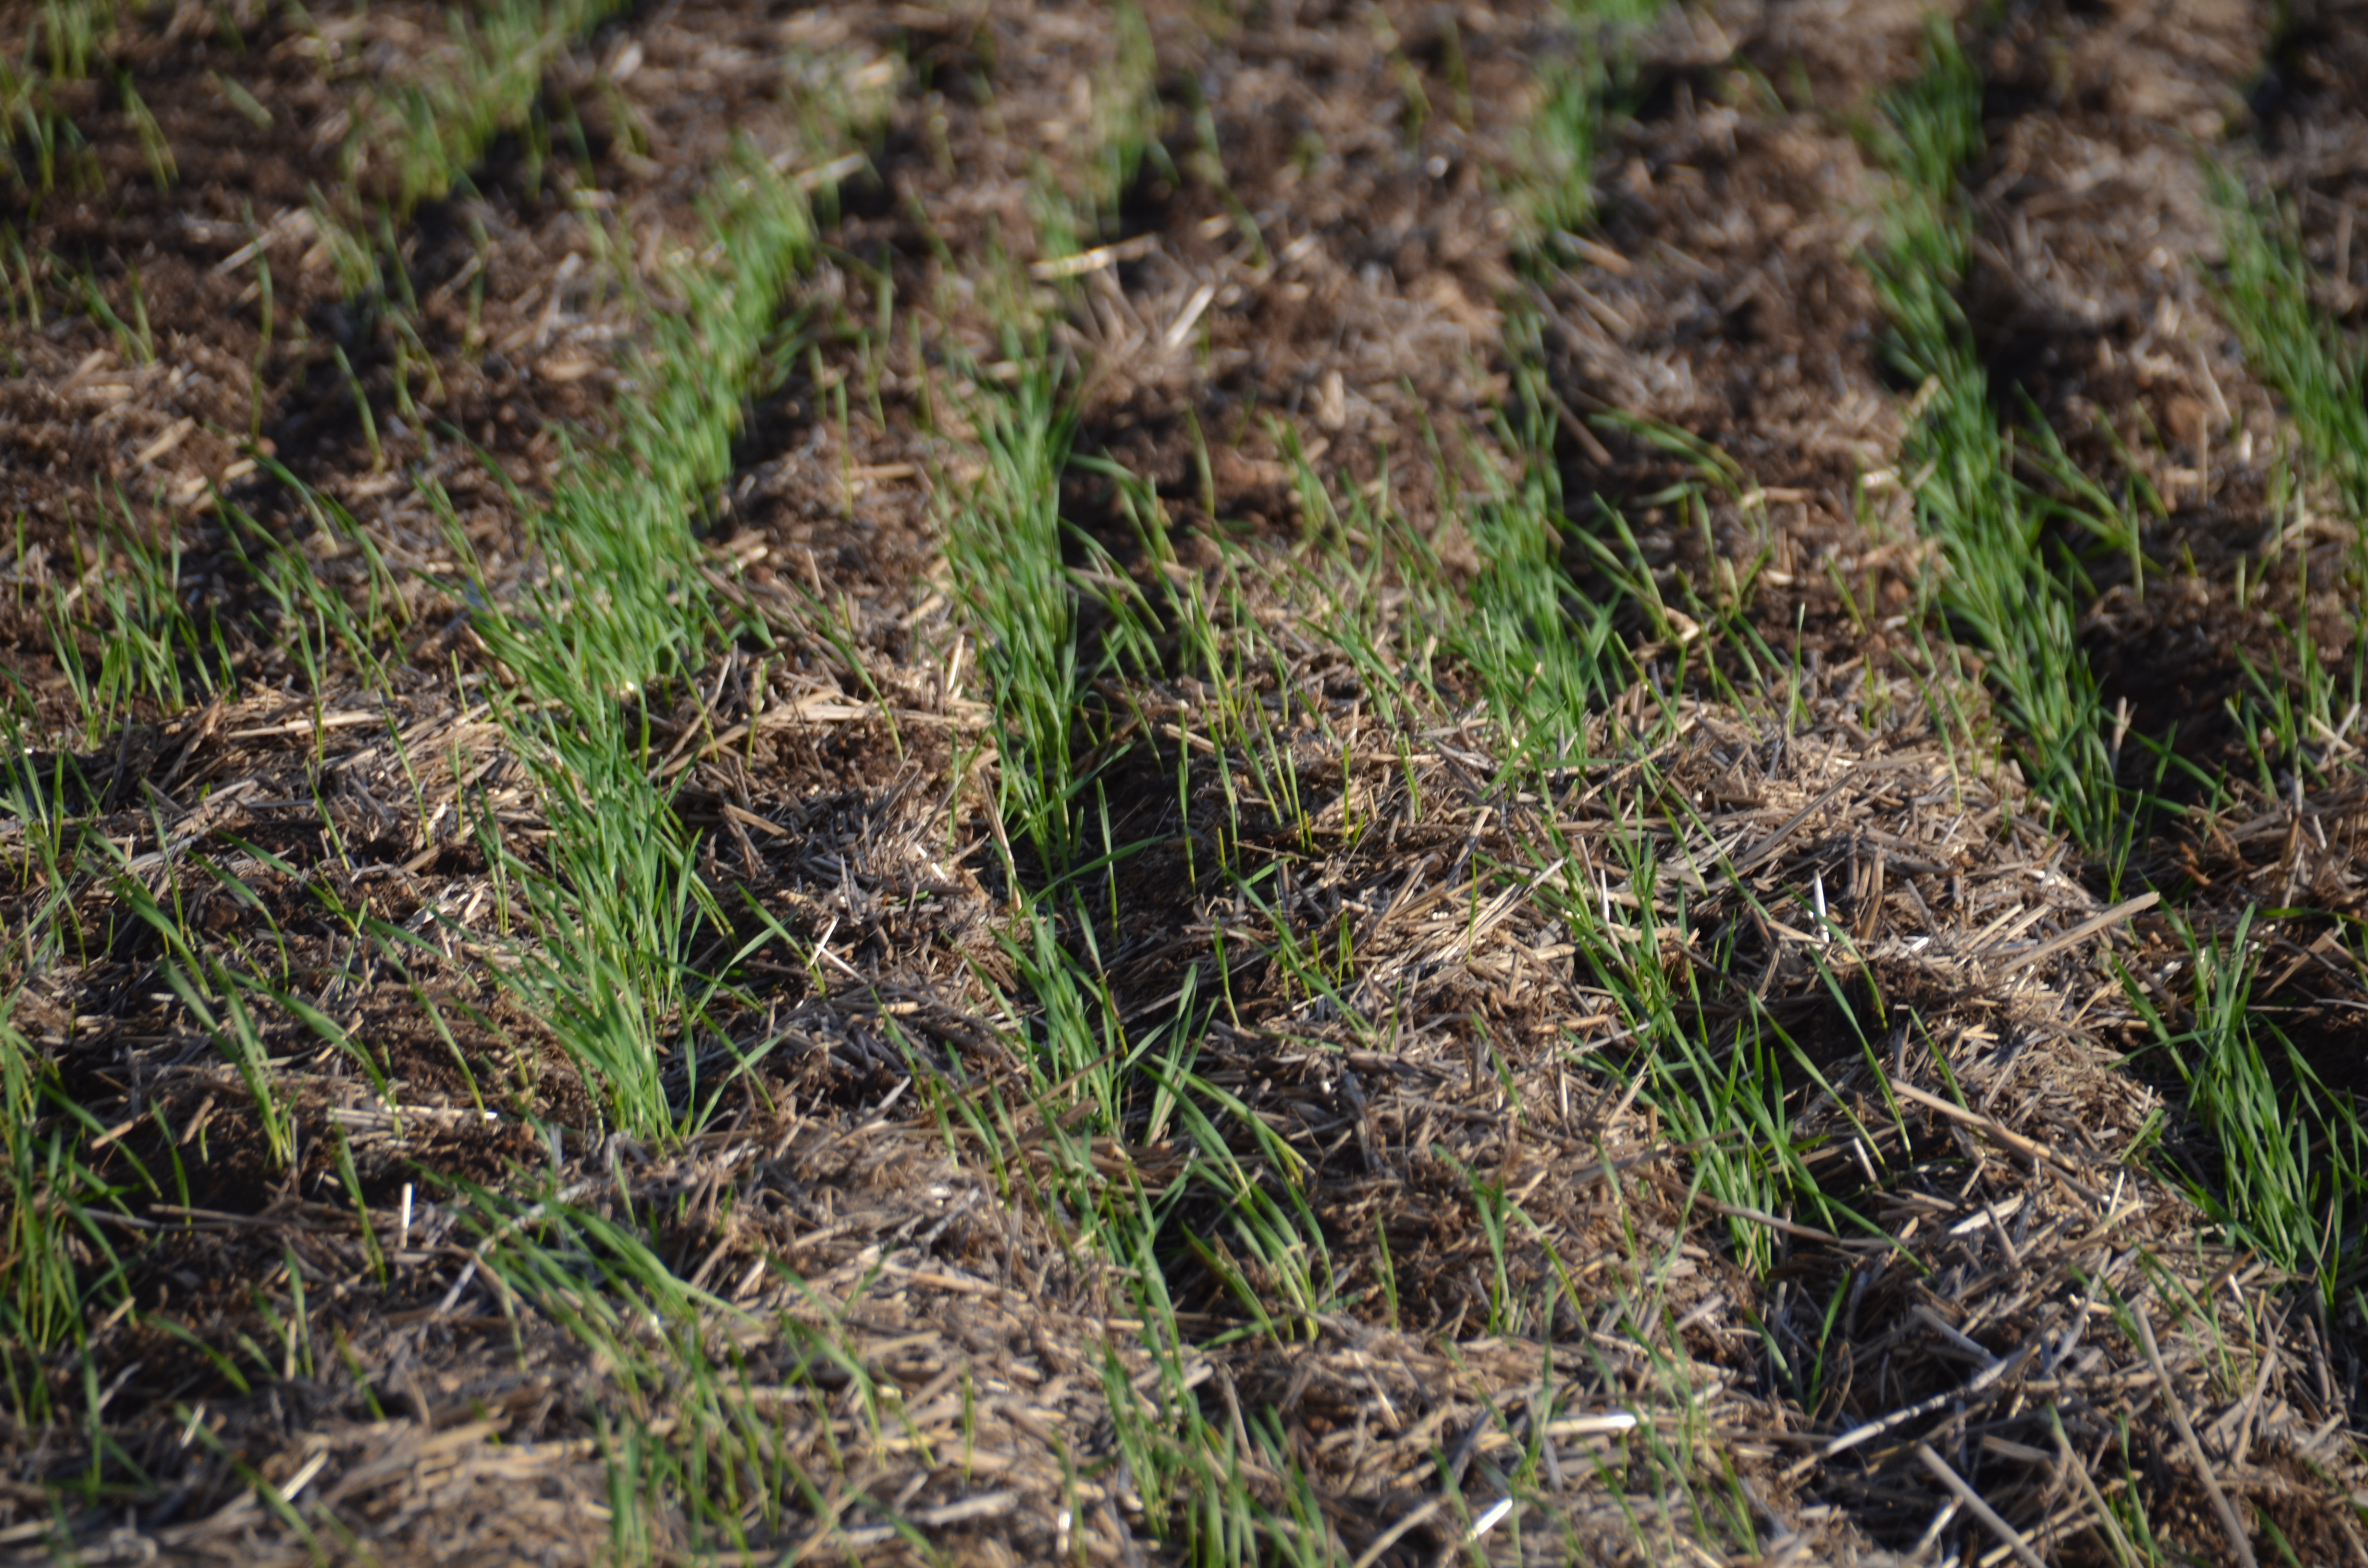 In recent years Colin has reduced the row spacing from 30–33 cm (12–13 inch) to 25 cm (10 inches) on one seeder and the second seeder is set to sow paired rows at 23 cm (9 inch) spacing to increase crop competition while maintaining strong yields.